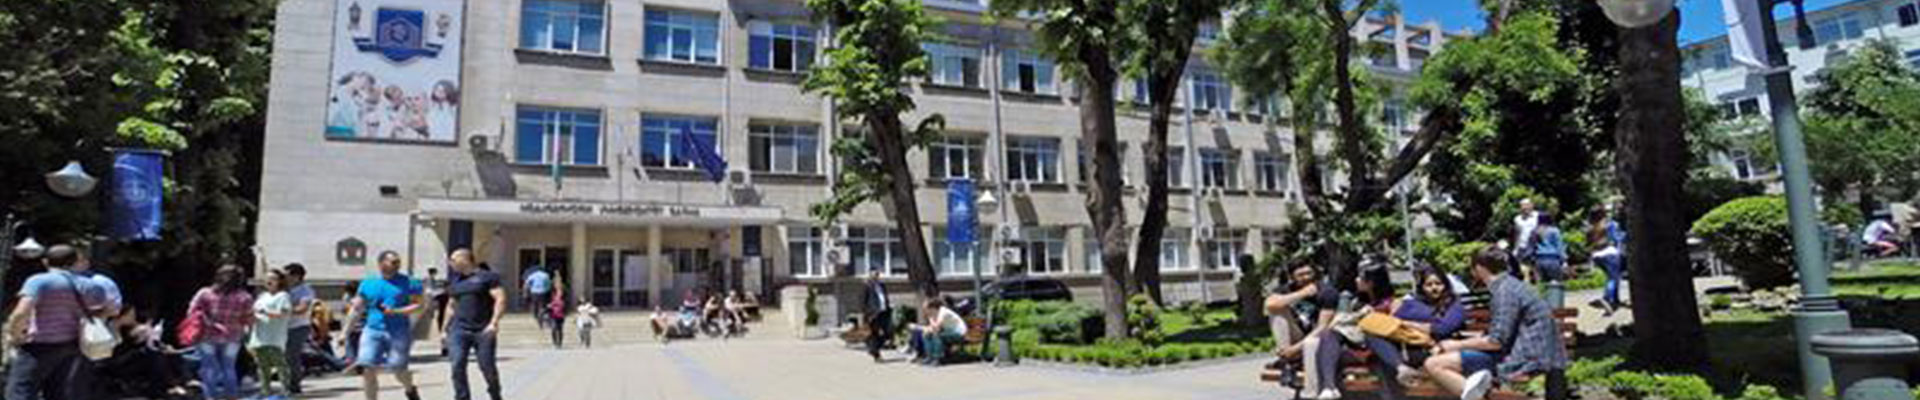 Varna Medical University